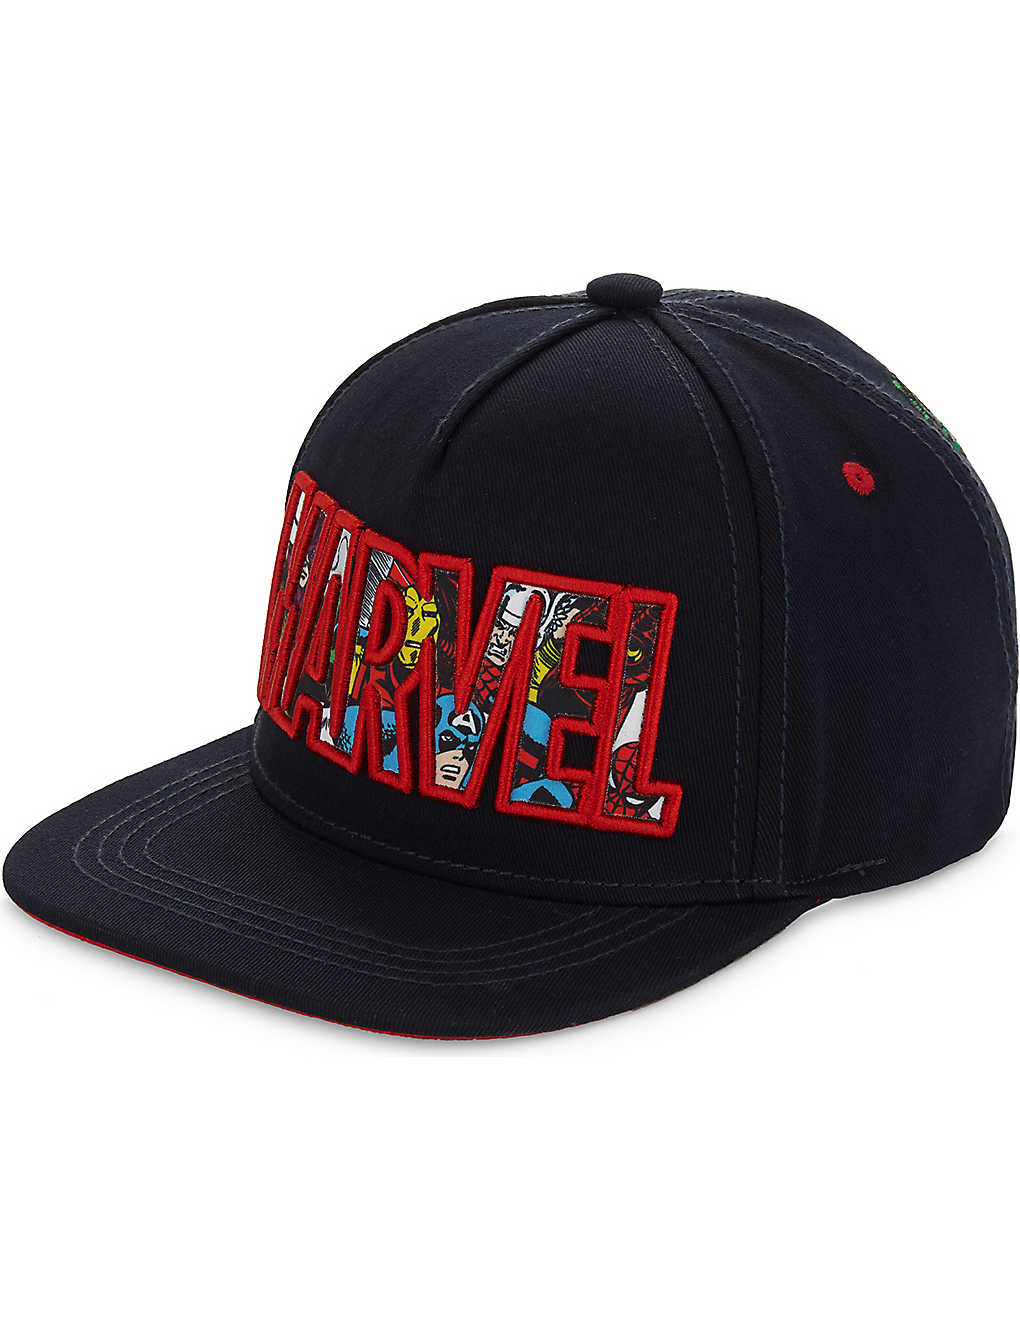 FABRIC FLAVOURS - Marvel Superheroes embroidered snapback cap ... ad8080b4375